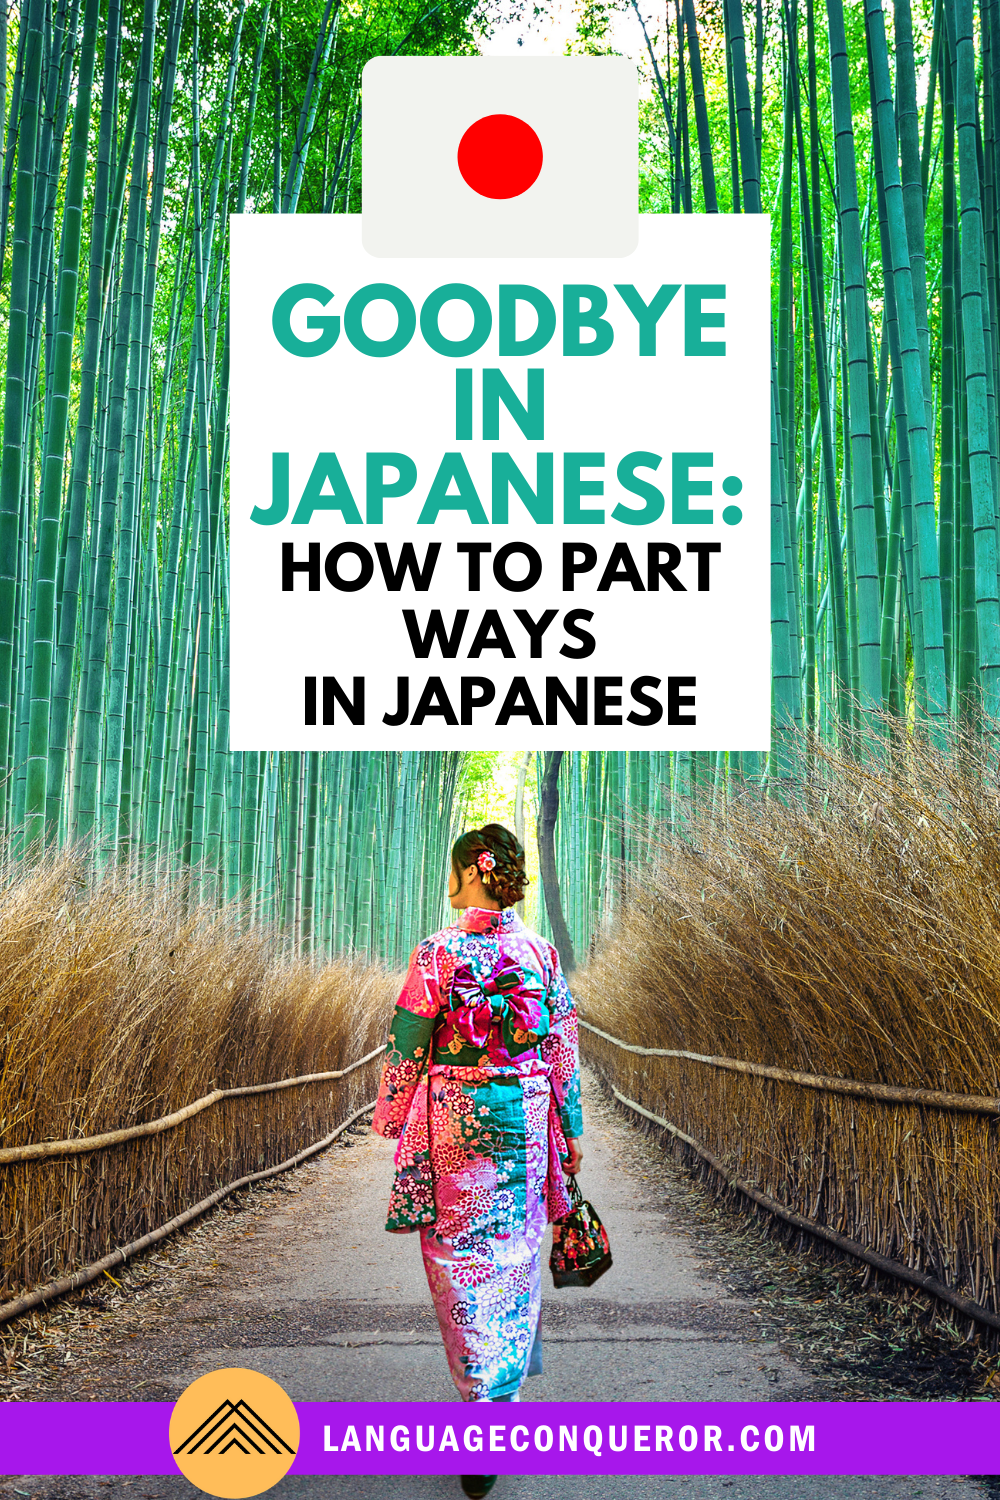 Goodbye in Japanese: How to Part Ways to Japanese